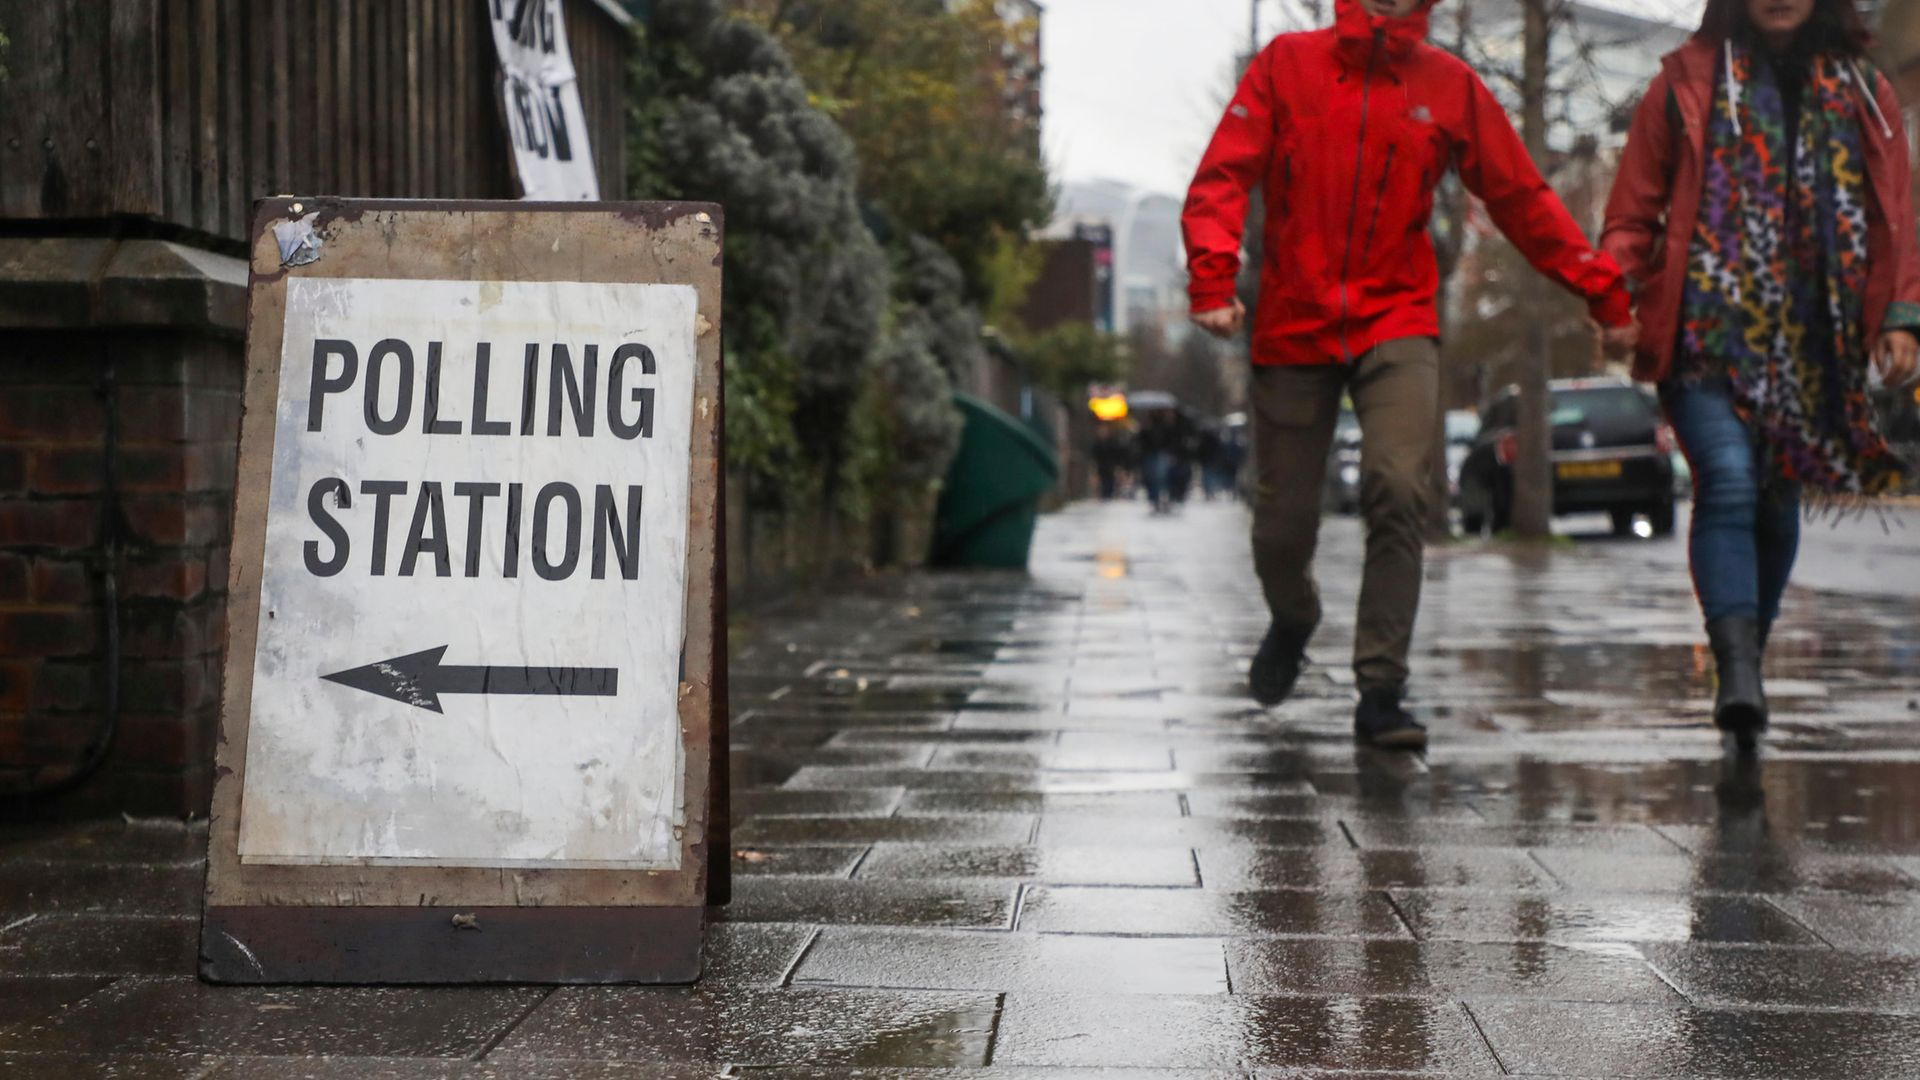 Voters head to polls for the December 2019 general election - Credit: NurPhoto via Getty Images